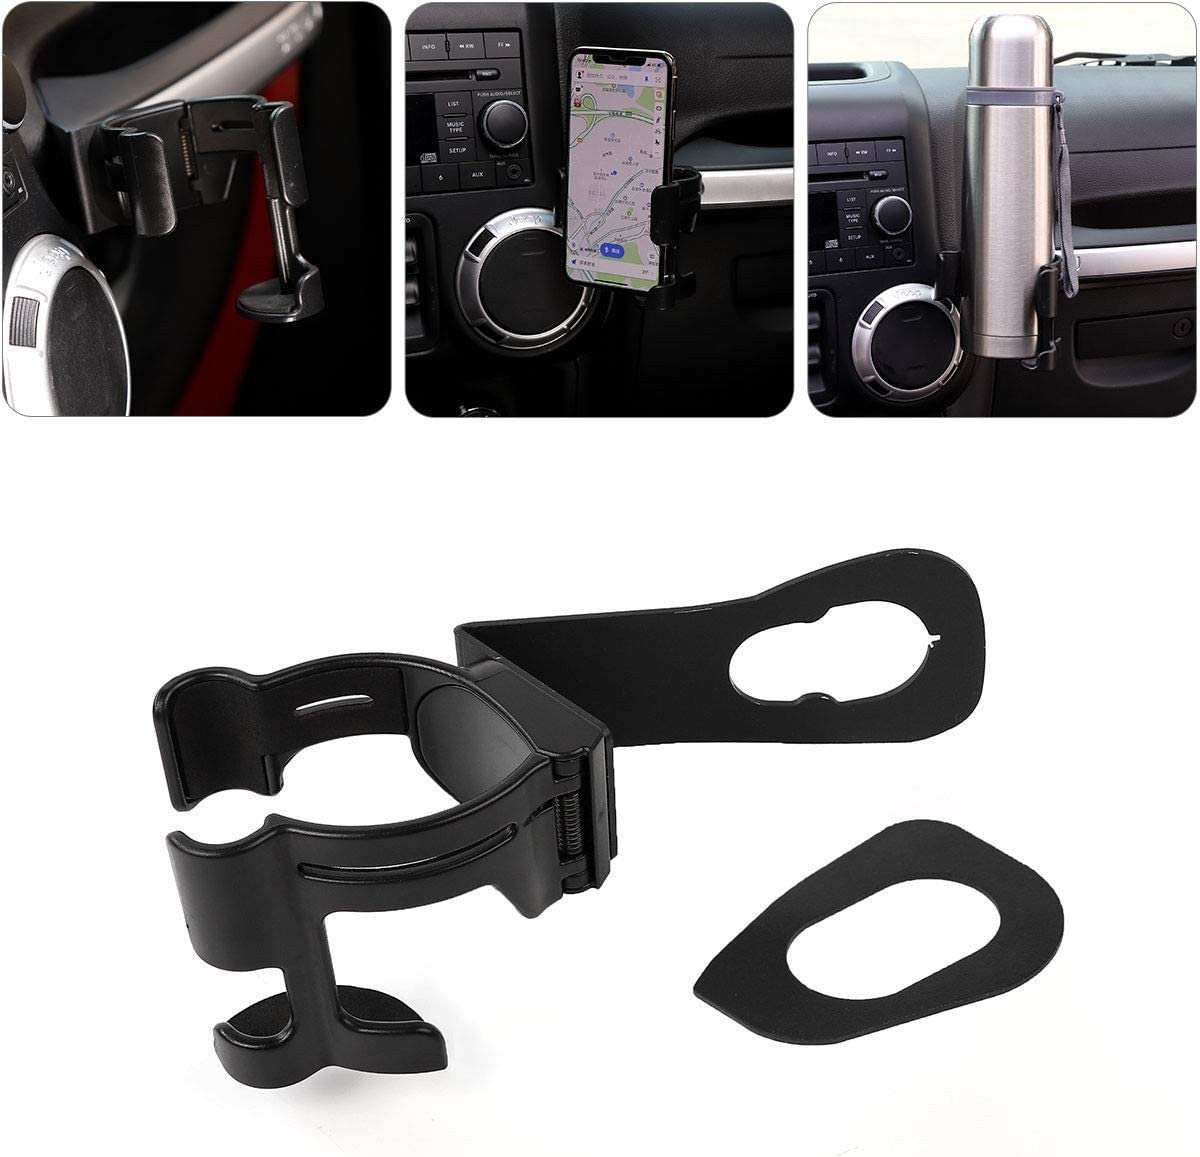 Bolt-on Stand Bracket Organizer for 2011-2018 Jeep Wrangler JK JKU Sahara Rubicon /& Unlimited u-Box Multi-Function Drink Cup Phone Holder